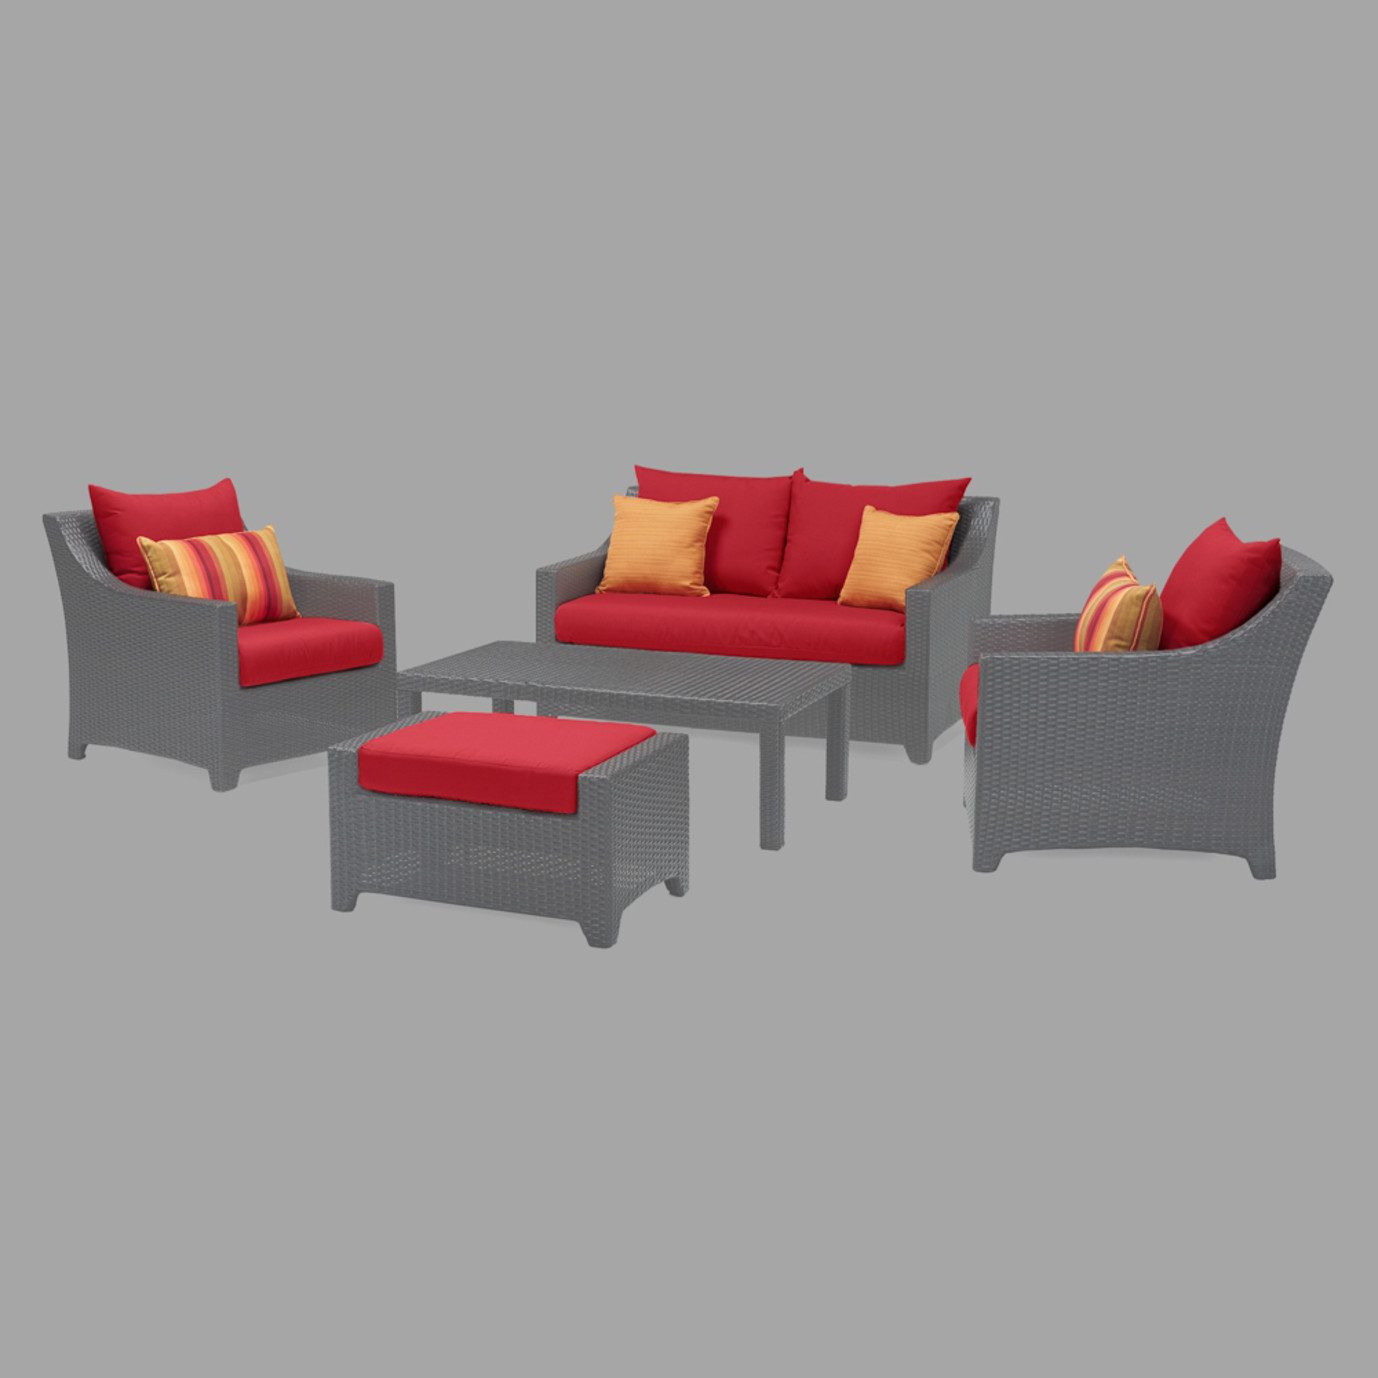 Modular Outdoor 6 Piece Love Cushion Cover Set - Sunset Red